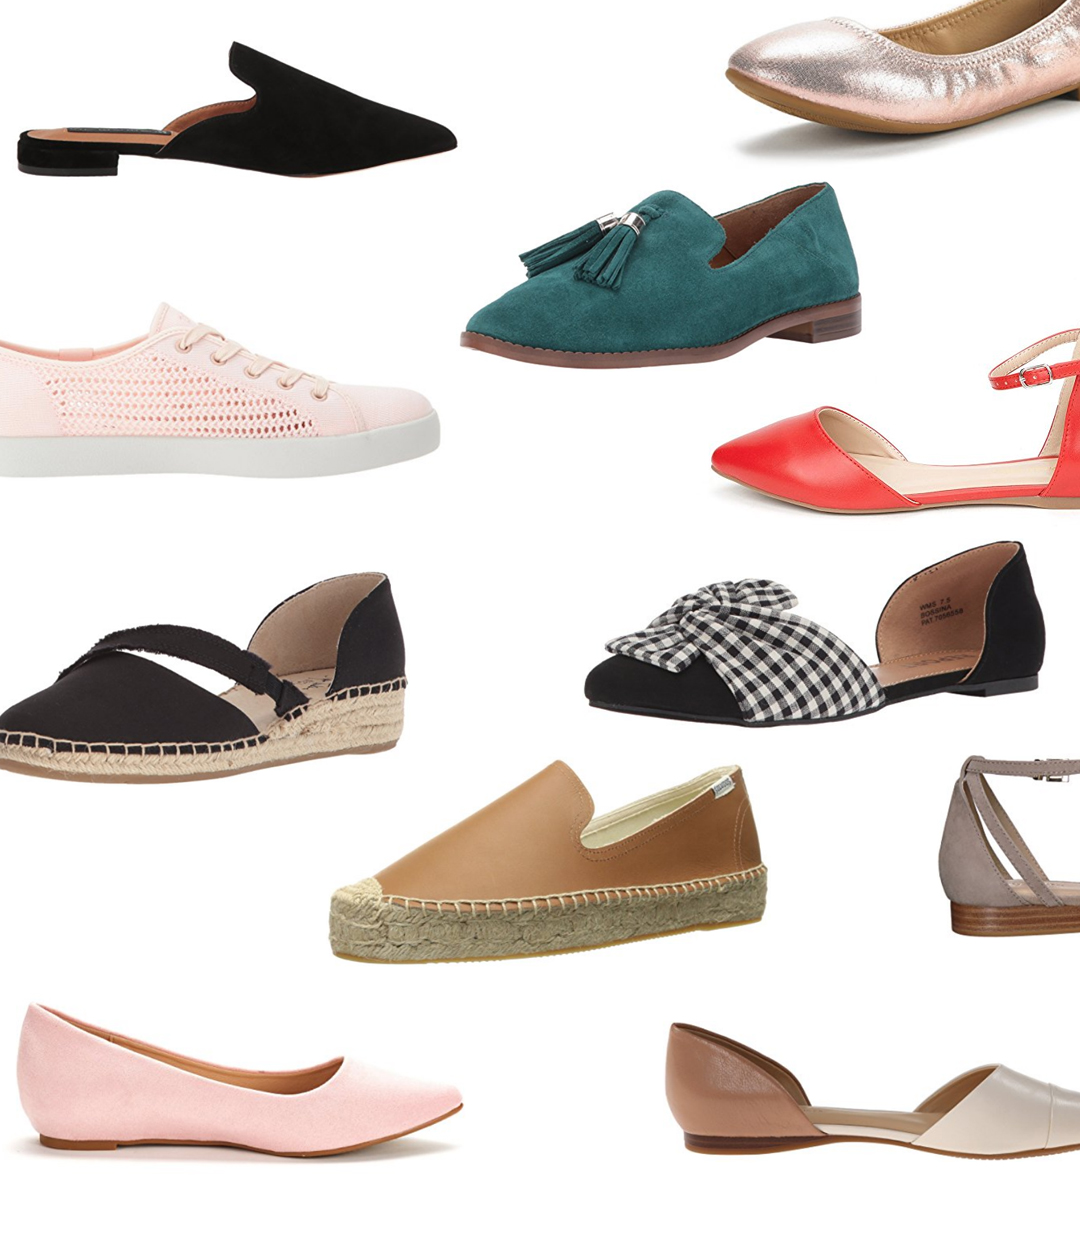 Women's Flats Under $100 For Spring 2018 :: Effortlessly with Roxy